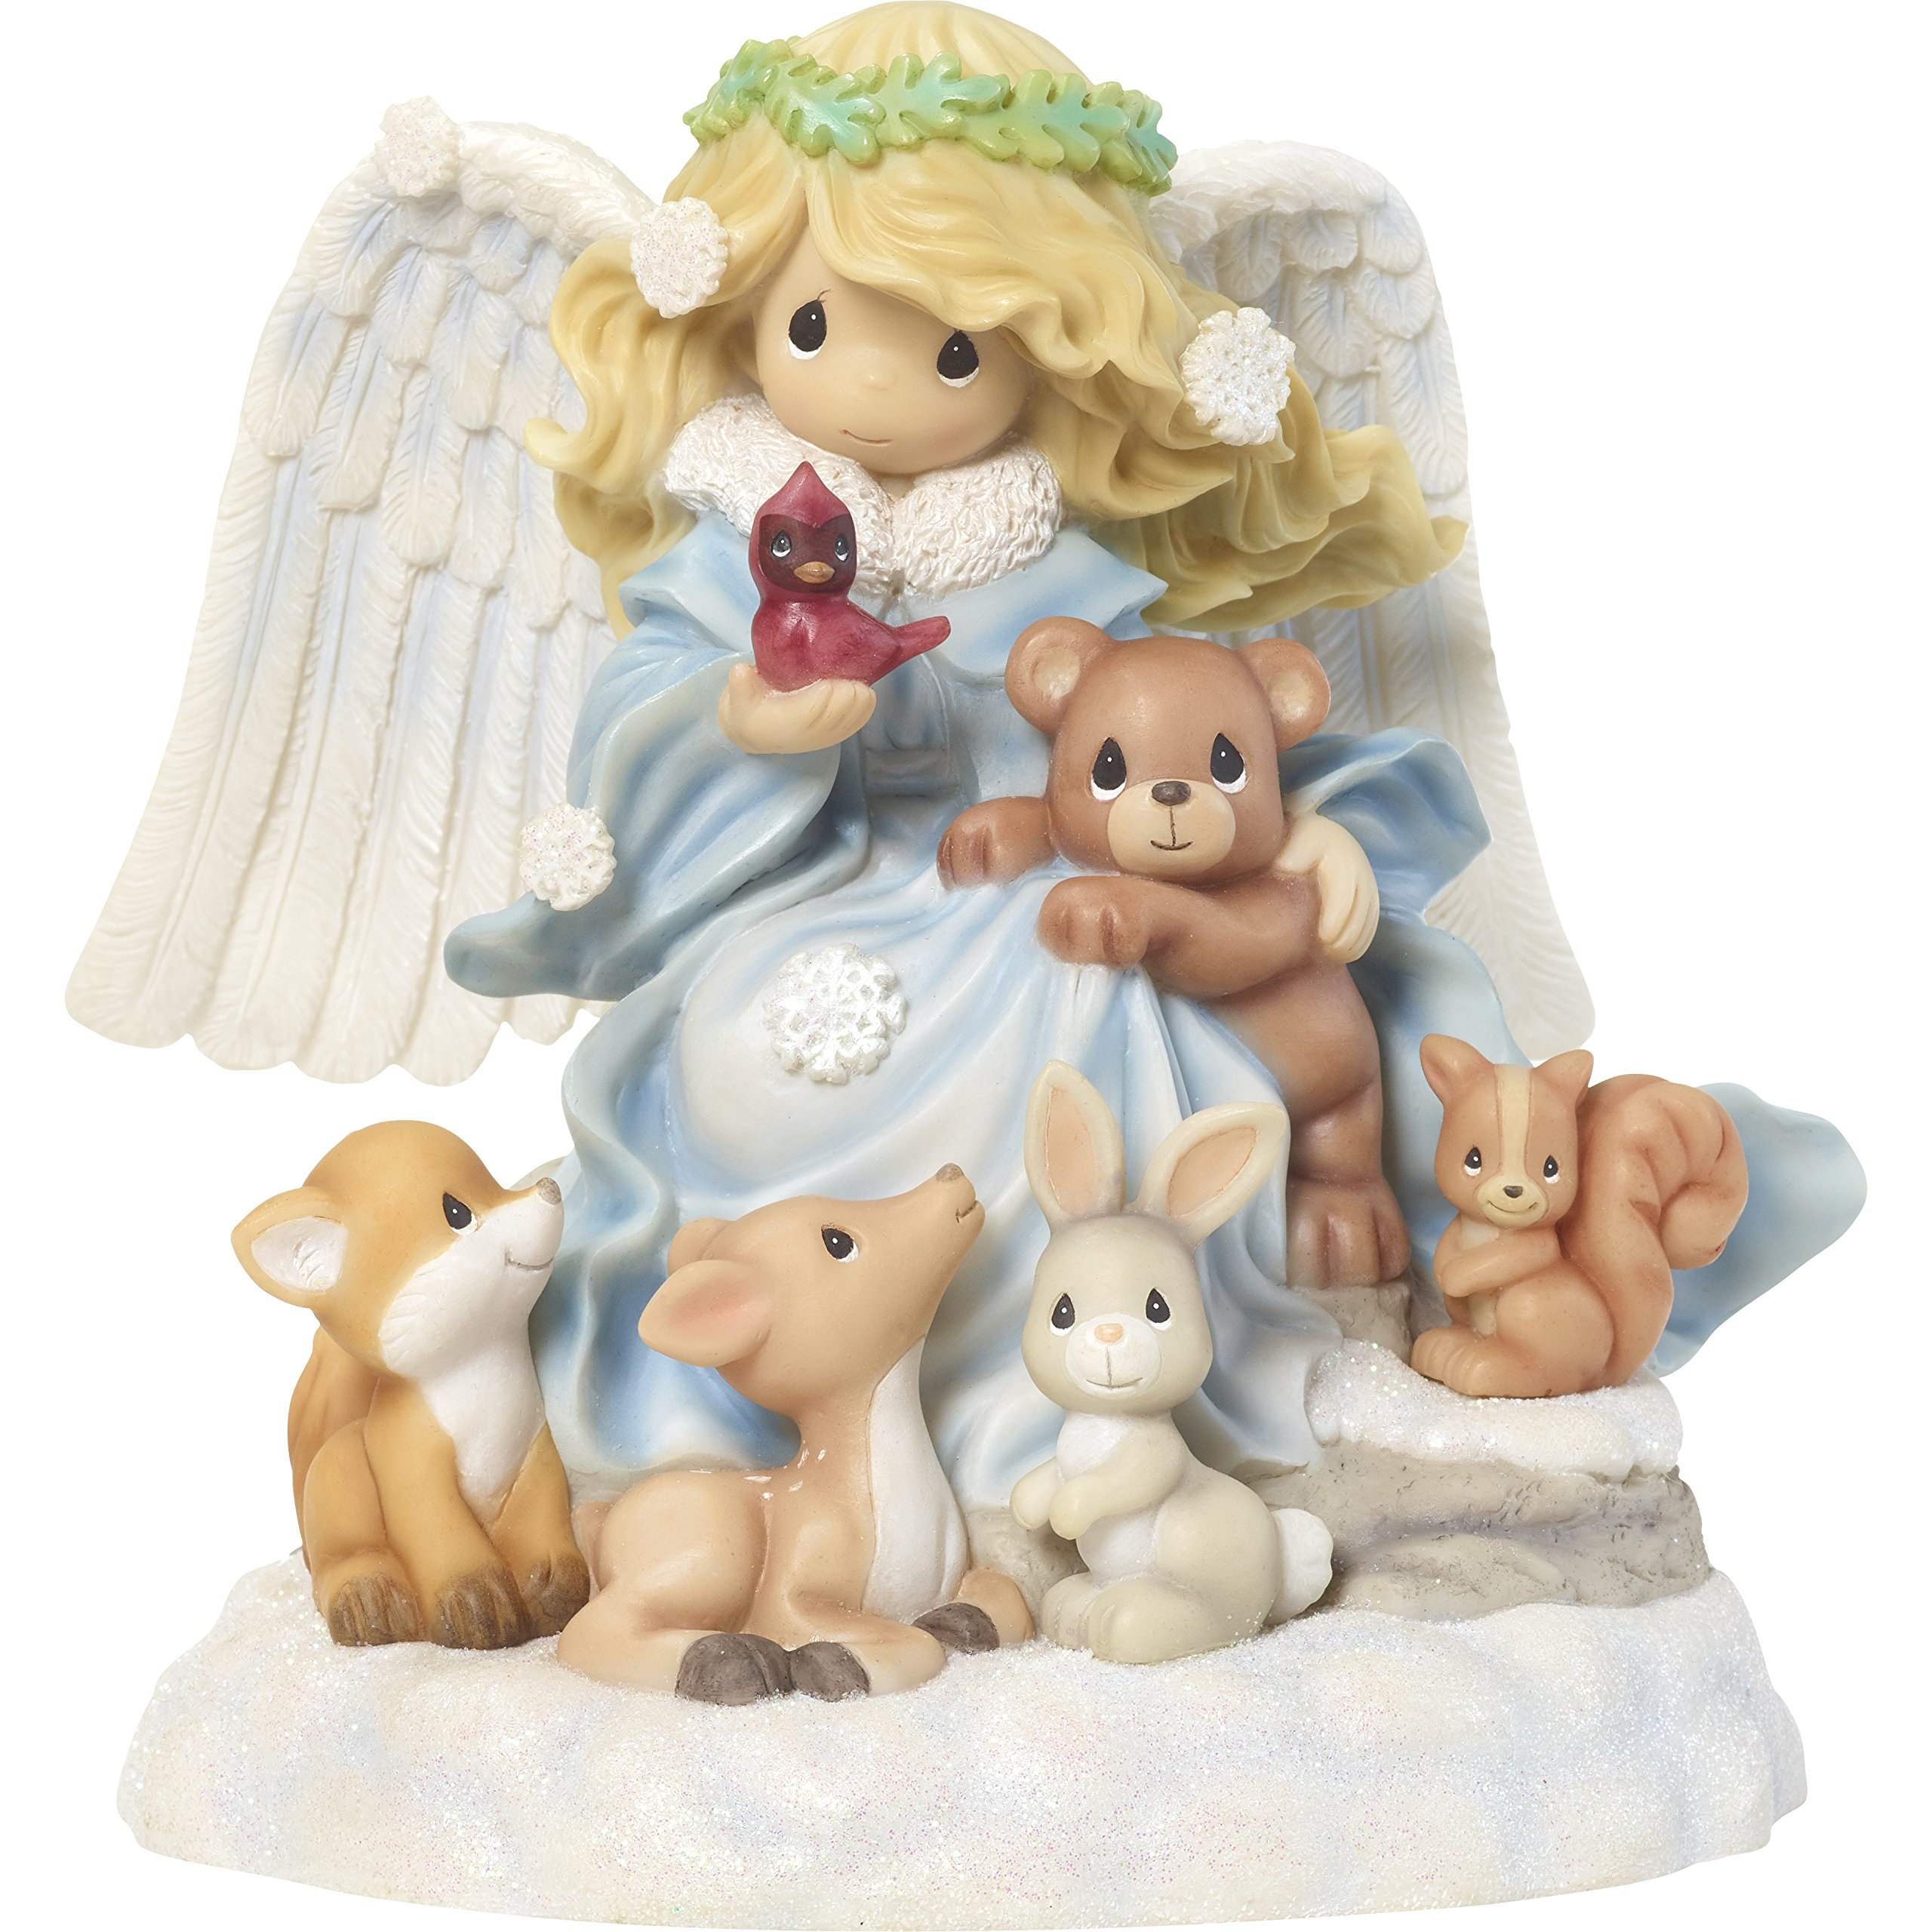 Precious Moments''''Joy to The World Angel with Woodland Creatures Musical Figurine, Multicolor